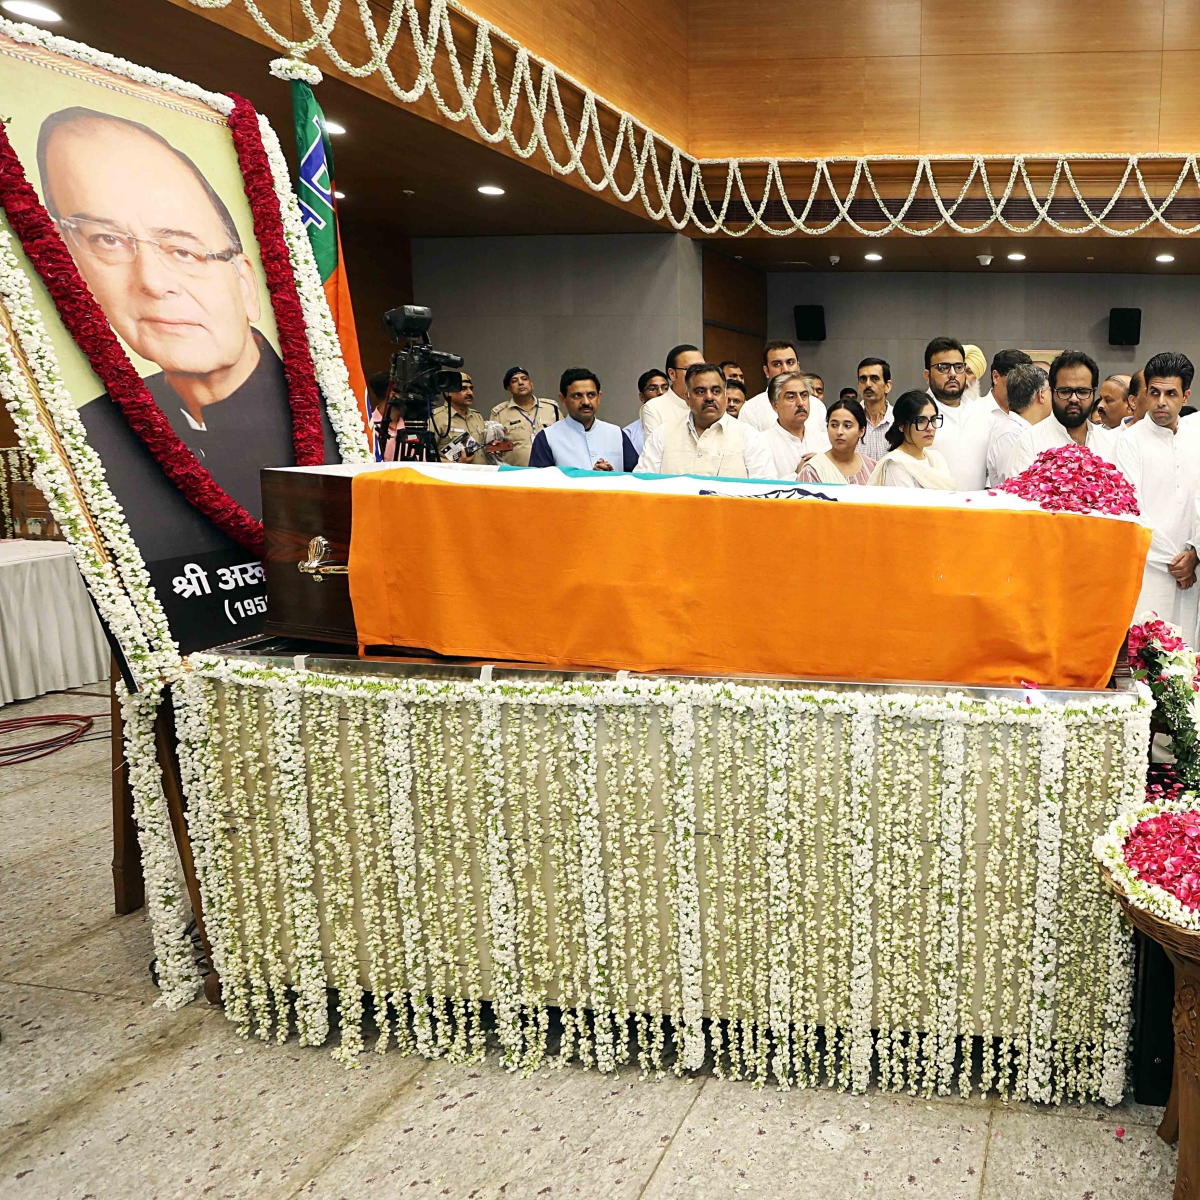 In Pics: Arun Jaitley cremated with full state honours, prominent politicians pay tribute